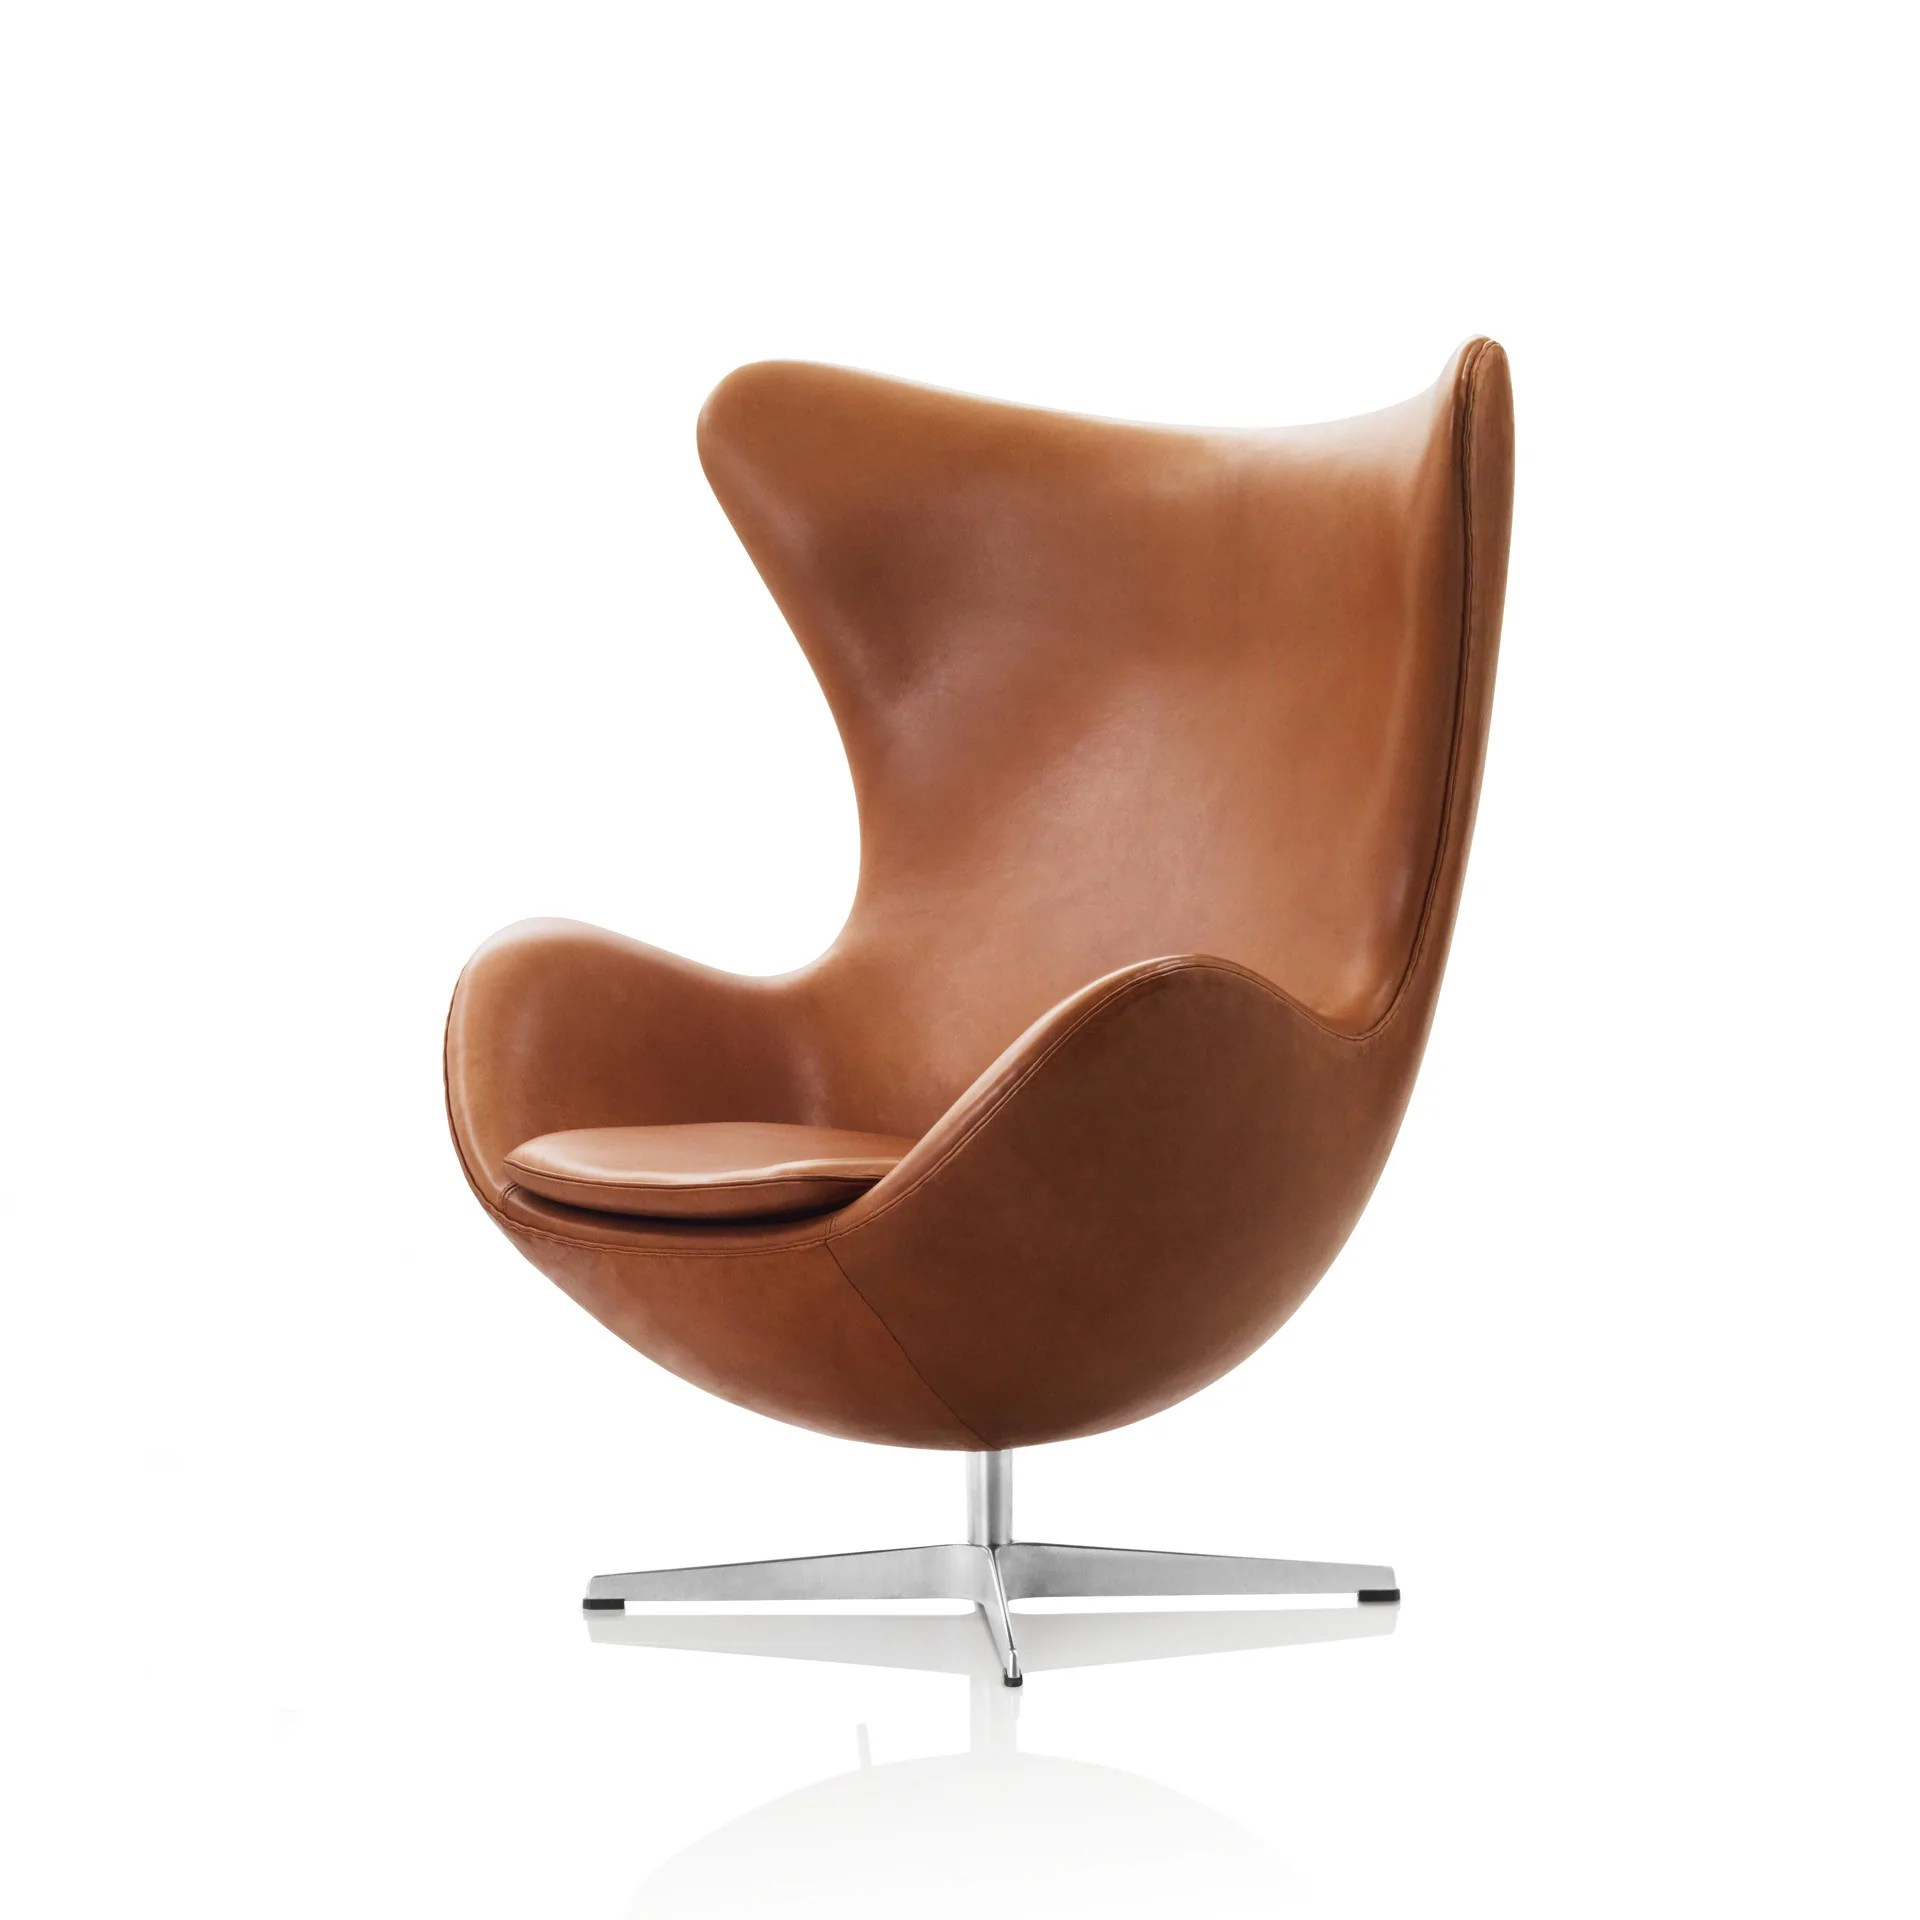 Arne Jacobsen Egg Chair Couch Potato Company